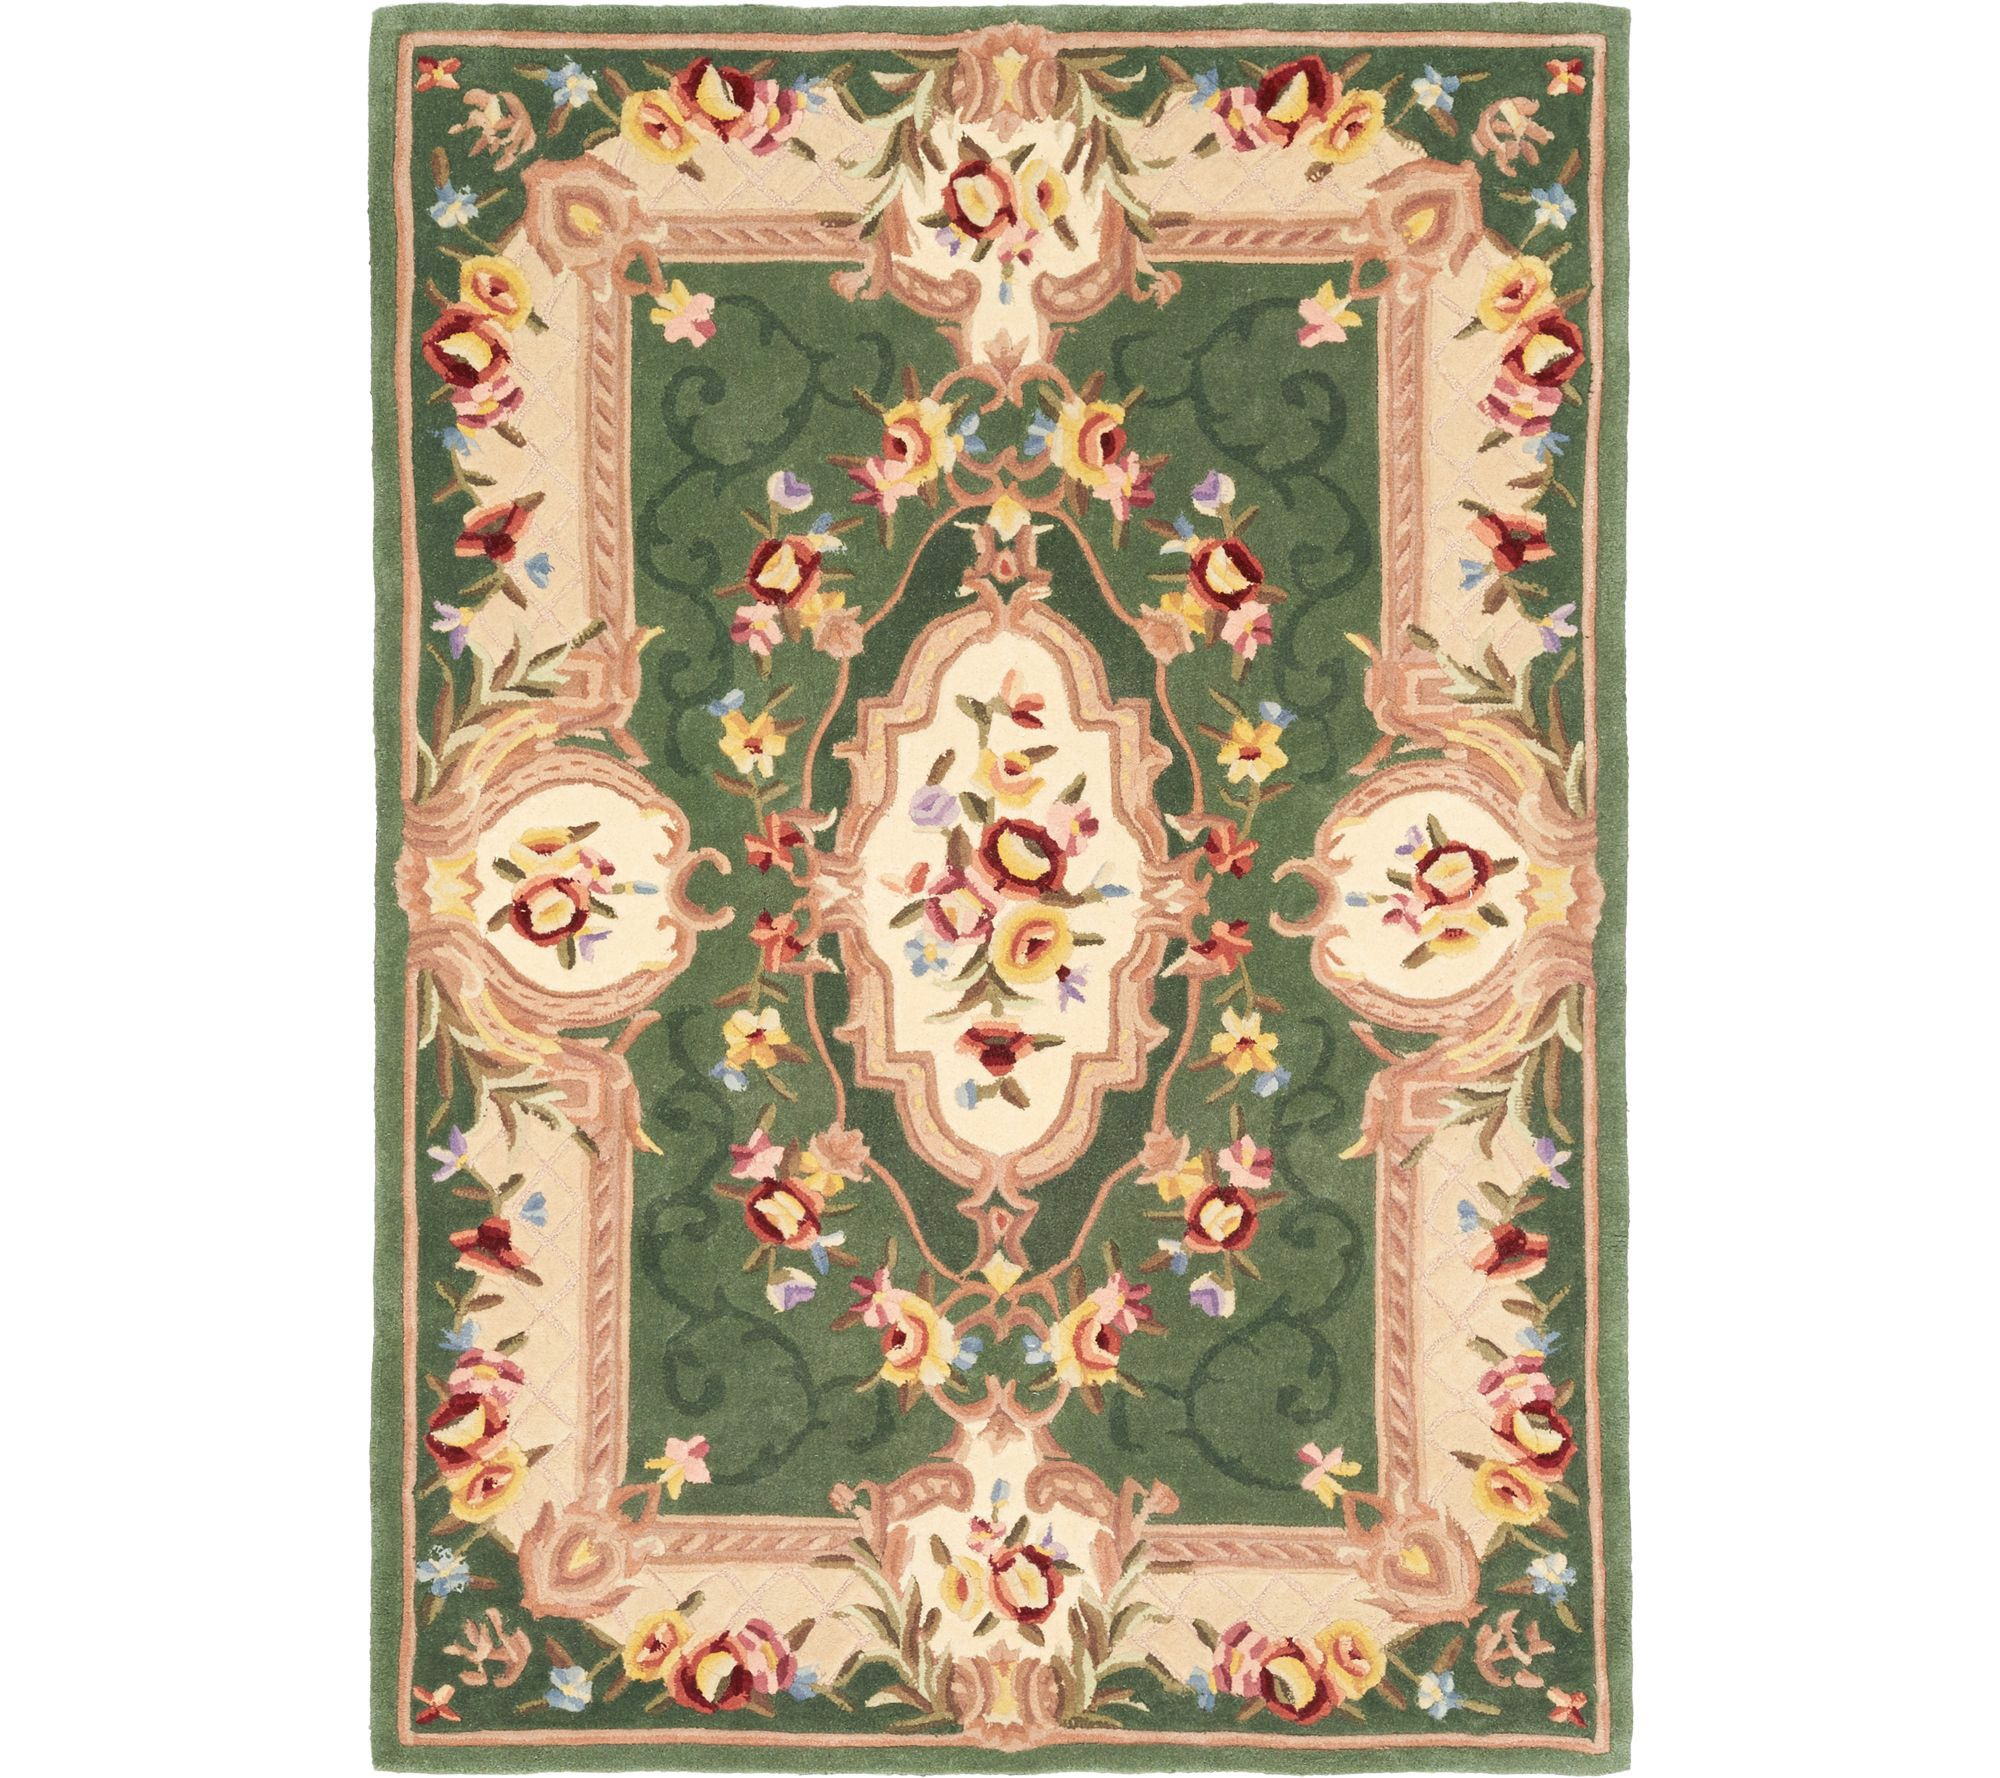 Royal Palace Special Edition Savonnerie 5 X 7 Wool Rug